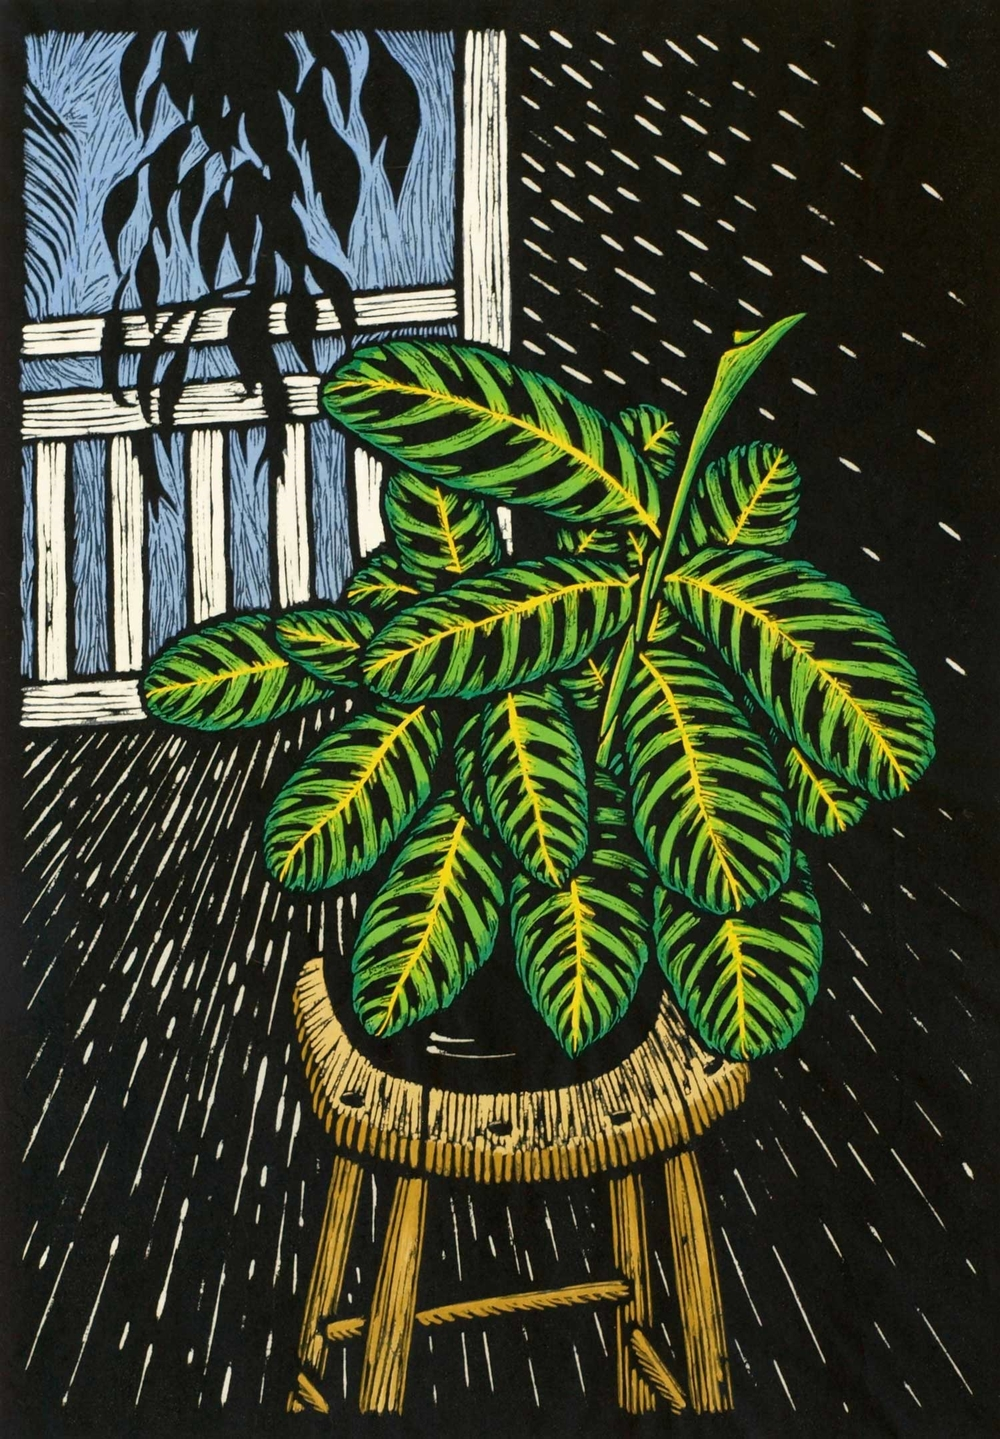 VERANDA LAKE EACHAM HOTEL 43 X 30 CM    EDITION OF 50 HAND COLOURED LINOCUT ON HANDMADE JAPANESE PAPER $750